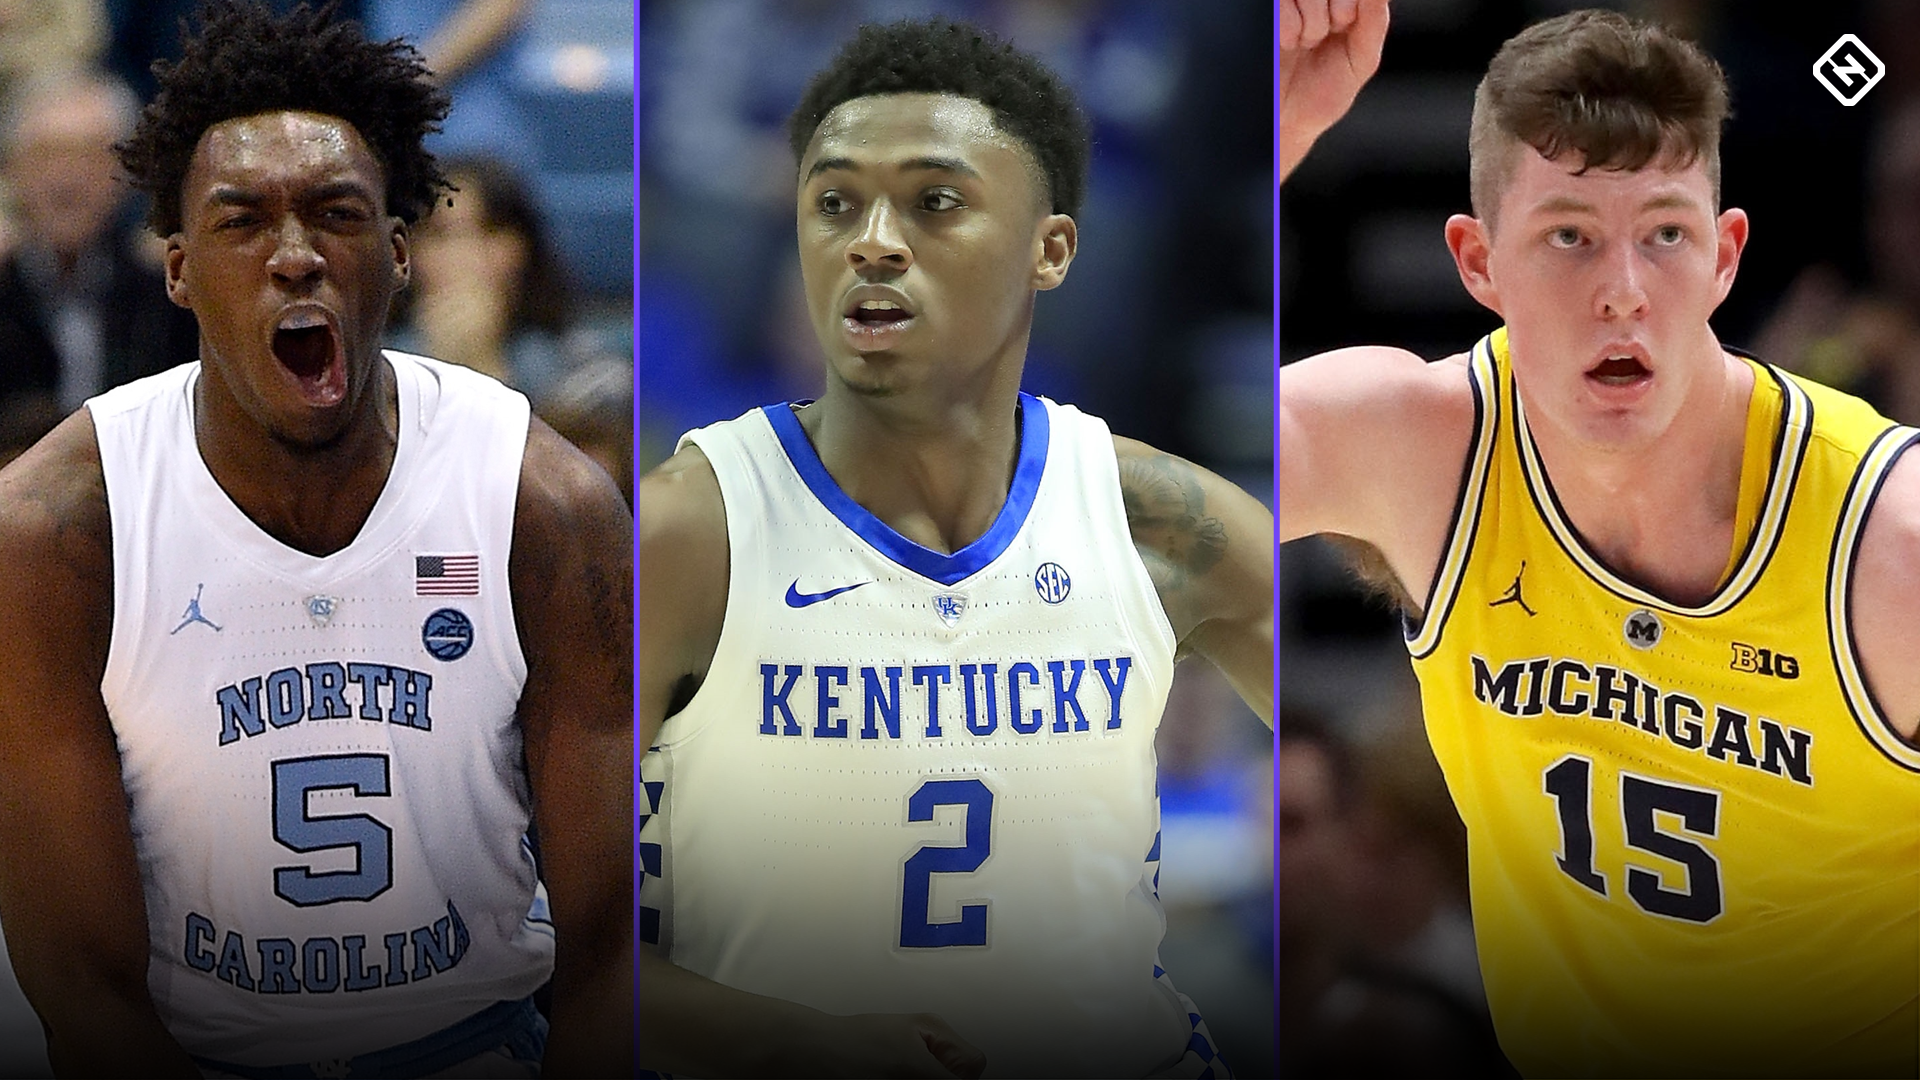 March Madness 2019: 12 Unheralded Players Who Could Impact